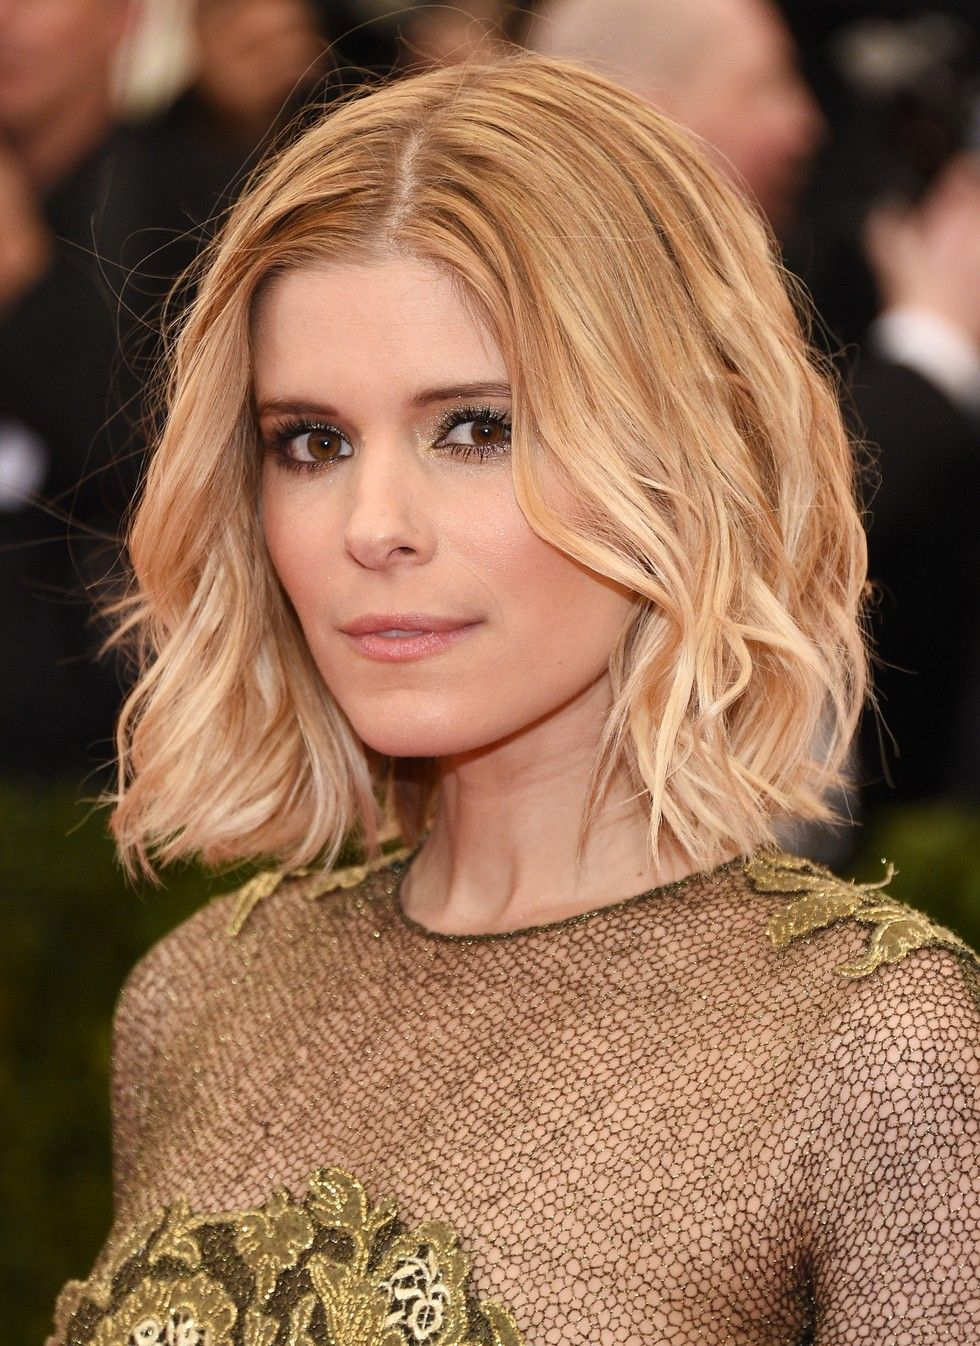 The Best Celeb Fashion and Beauty Looks From The 2014 Met Gala